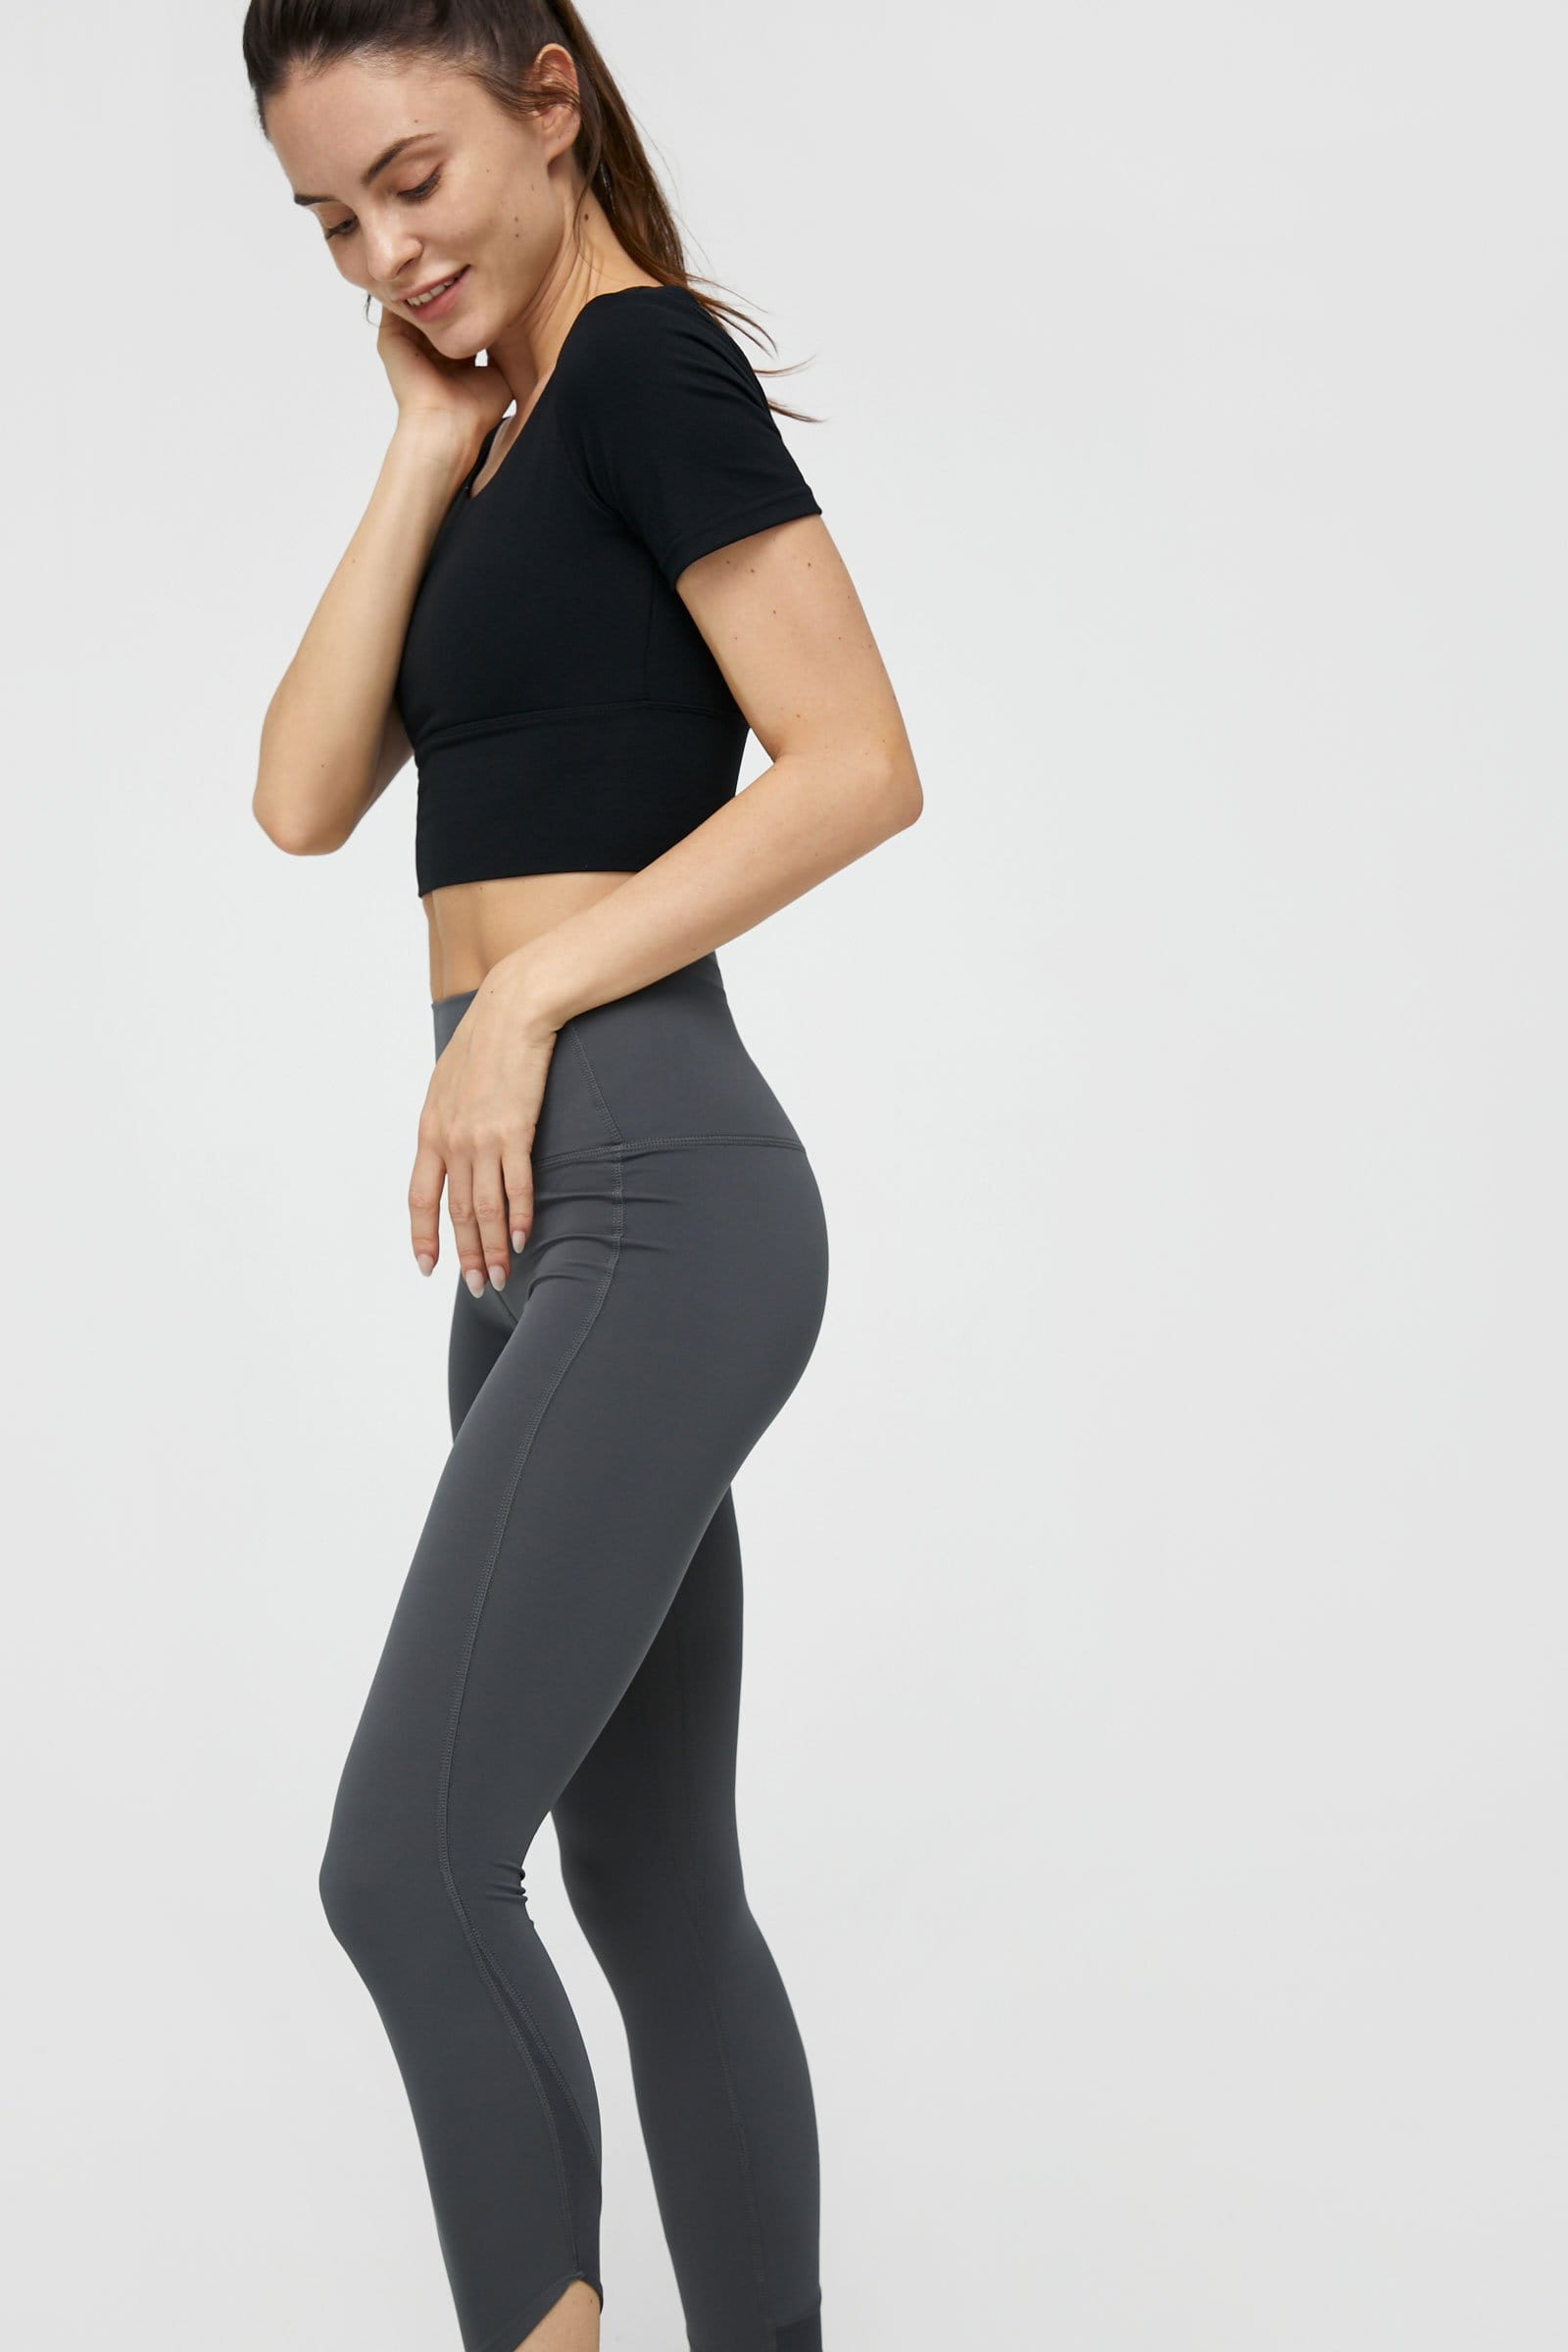 Carbon Black Strappy Back Performance Crop